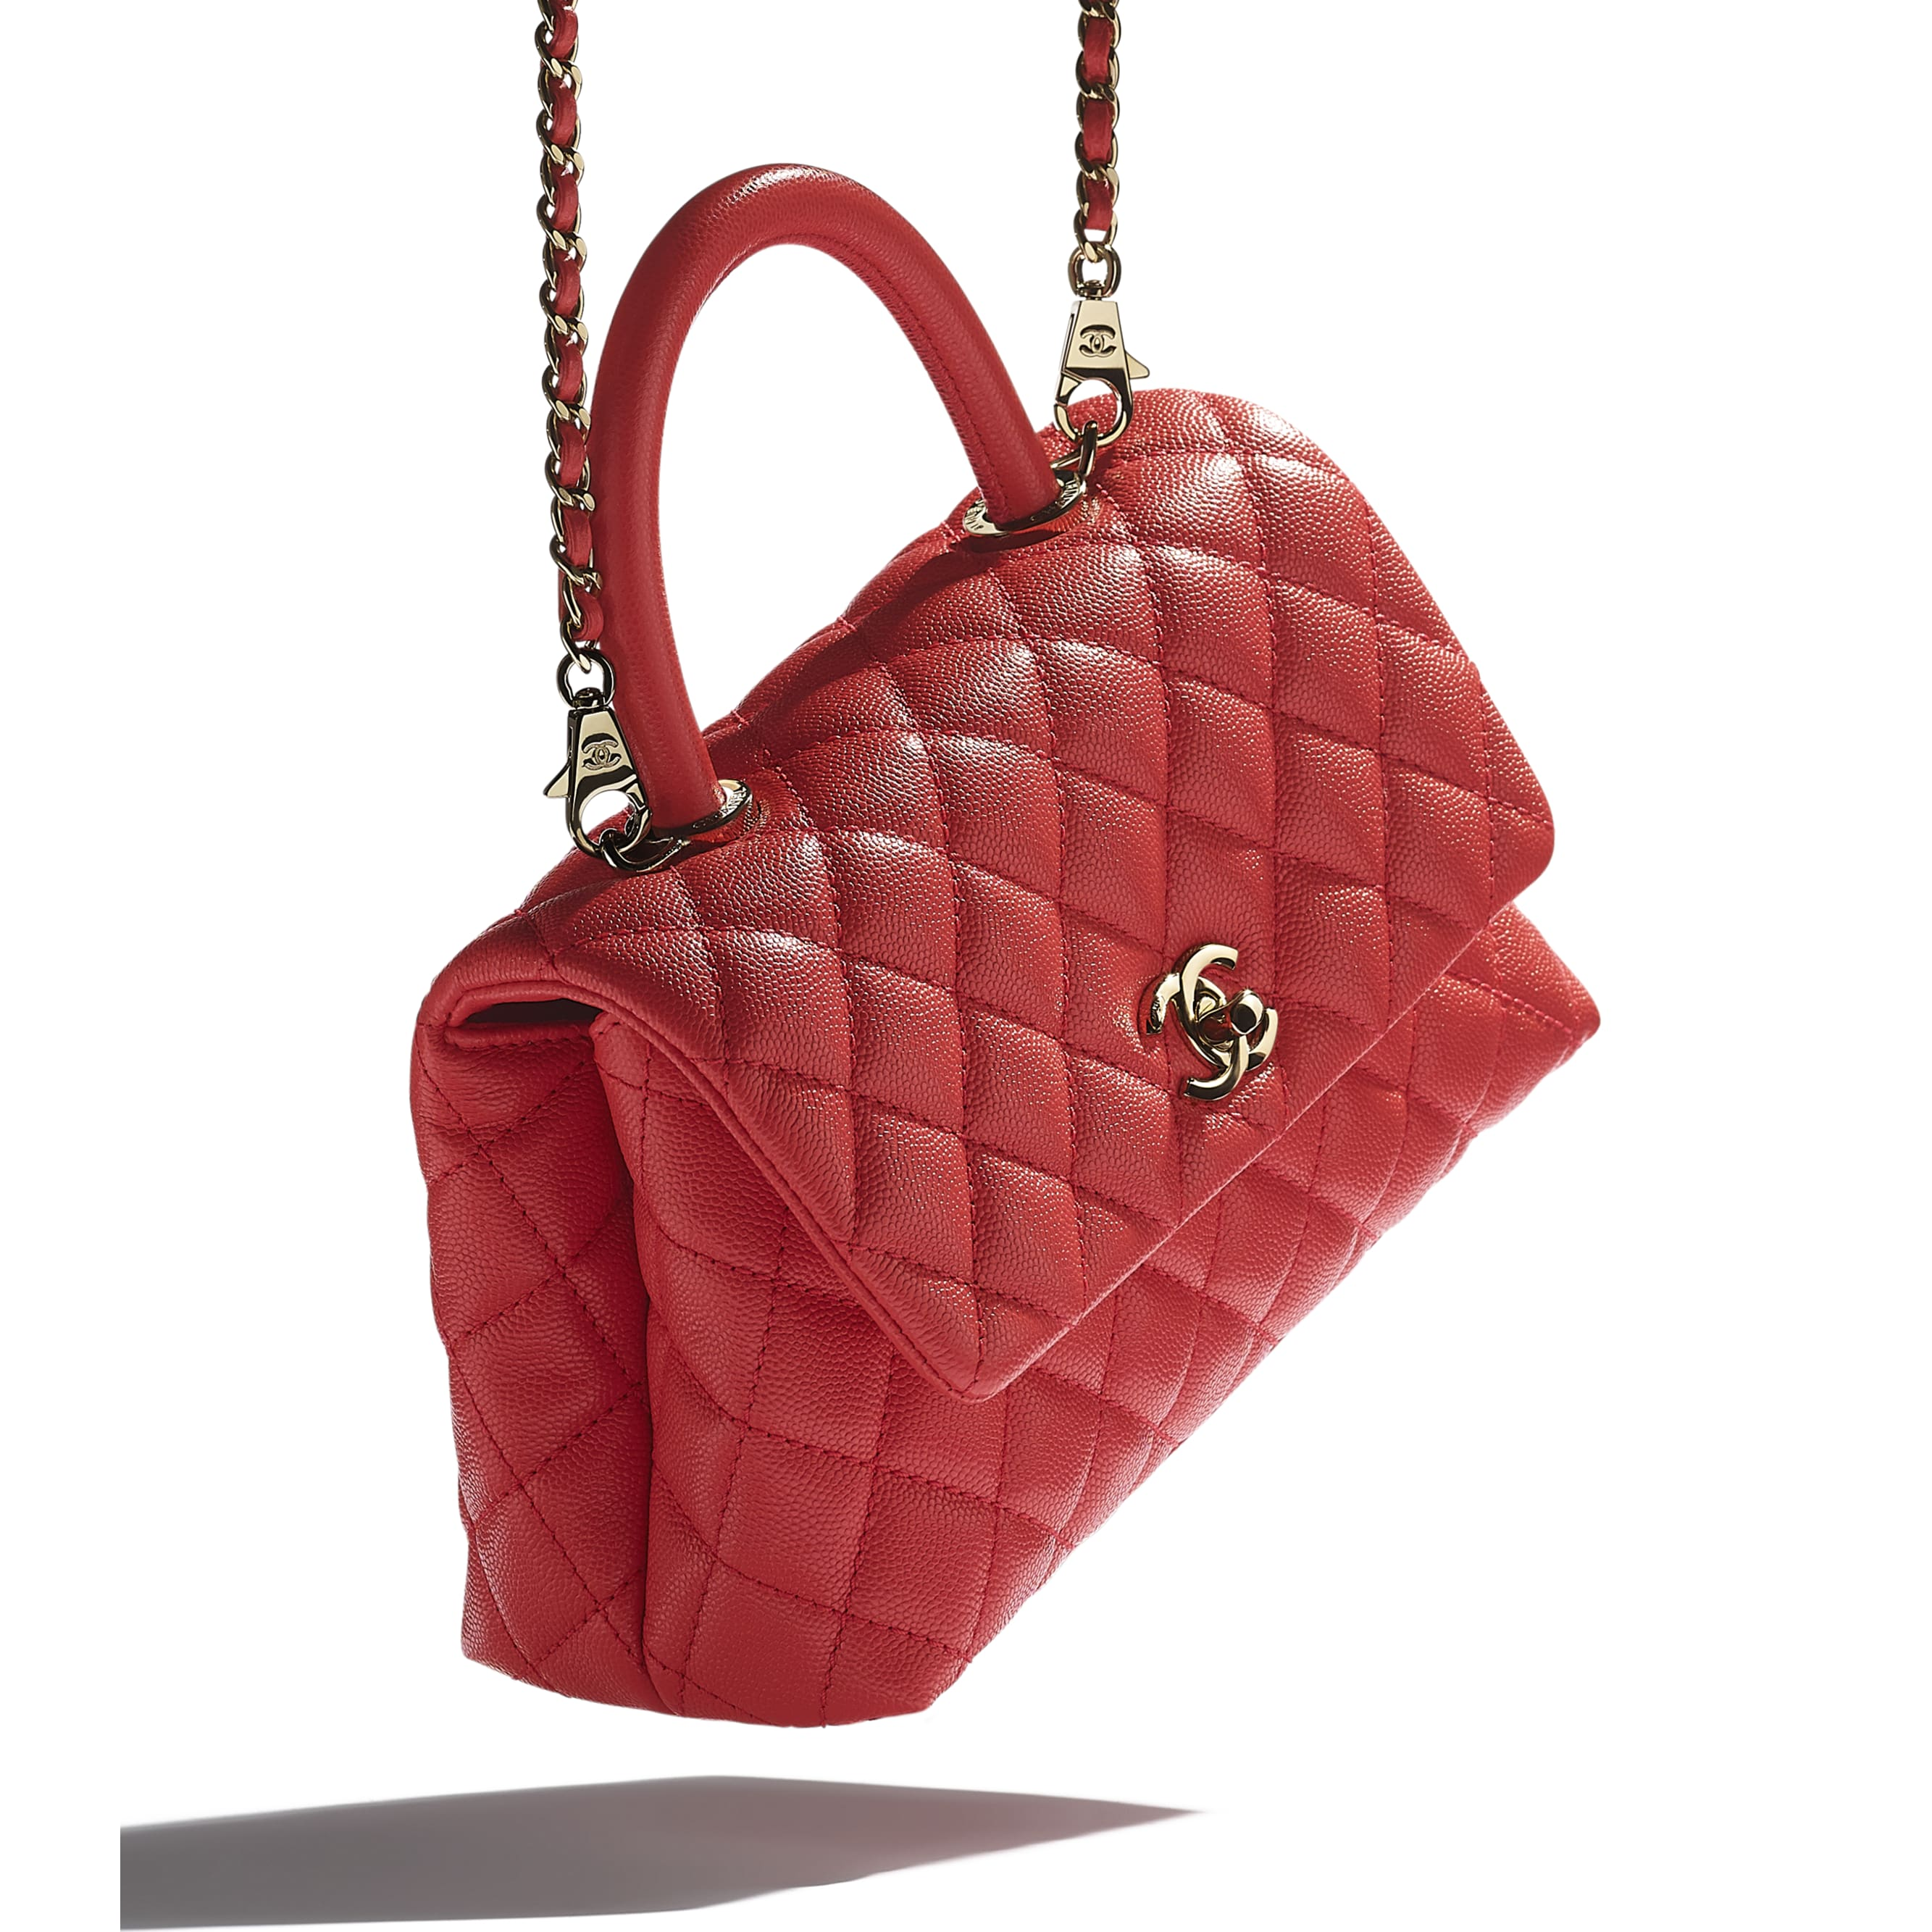 Flap Bag With Top Handle - Red - Grained Calfskin & Gold-Tone Metal - CHANEL - Extra view - see standard sized version